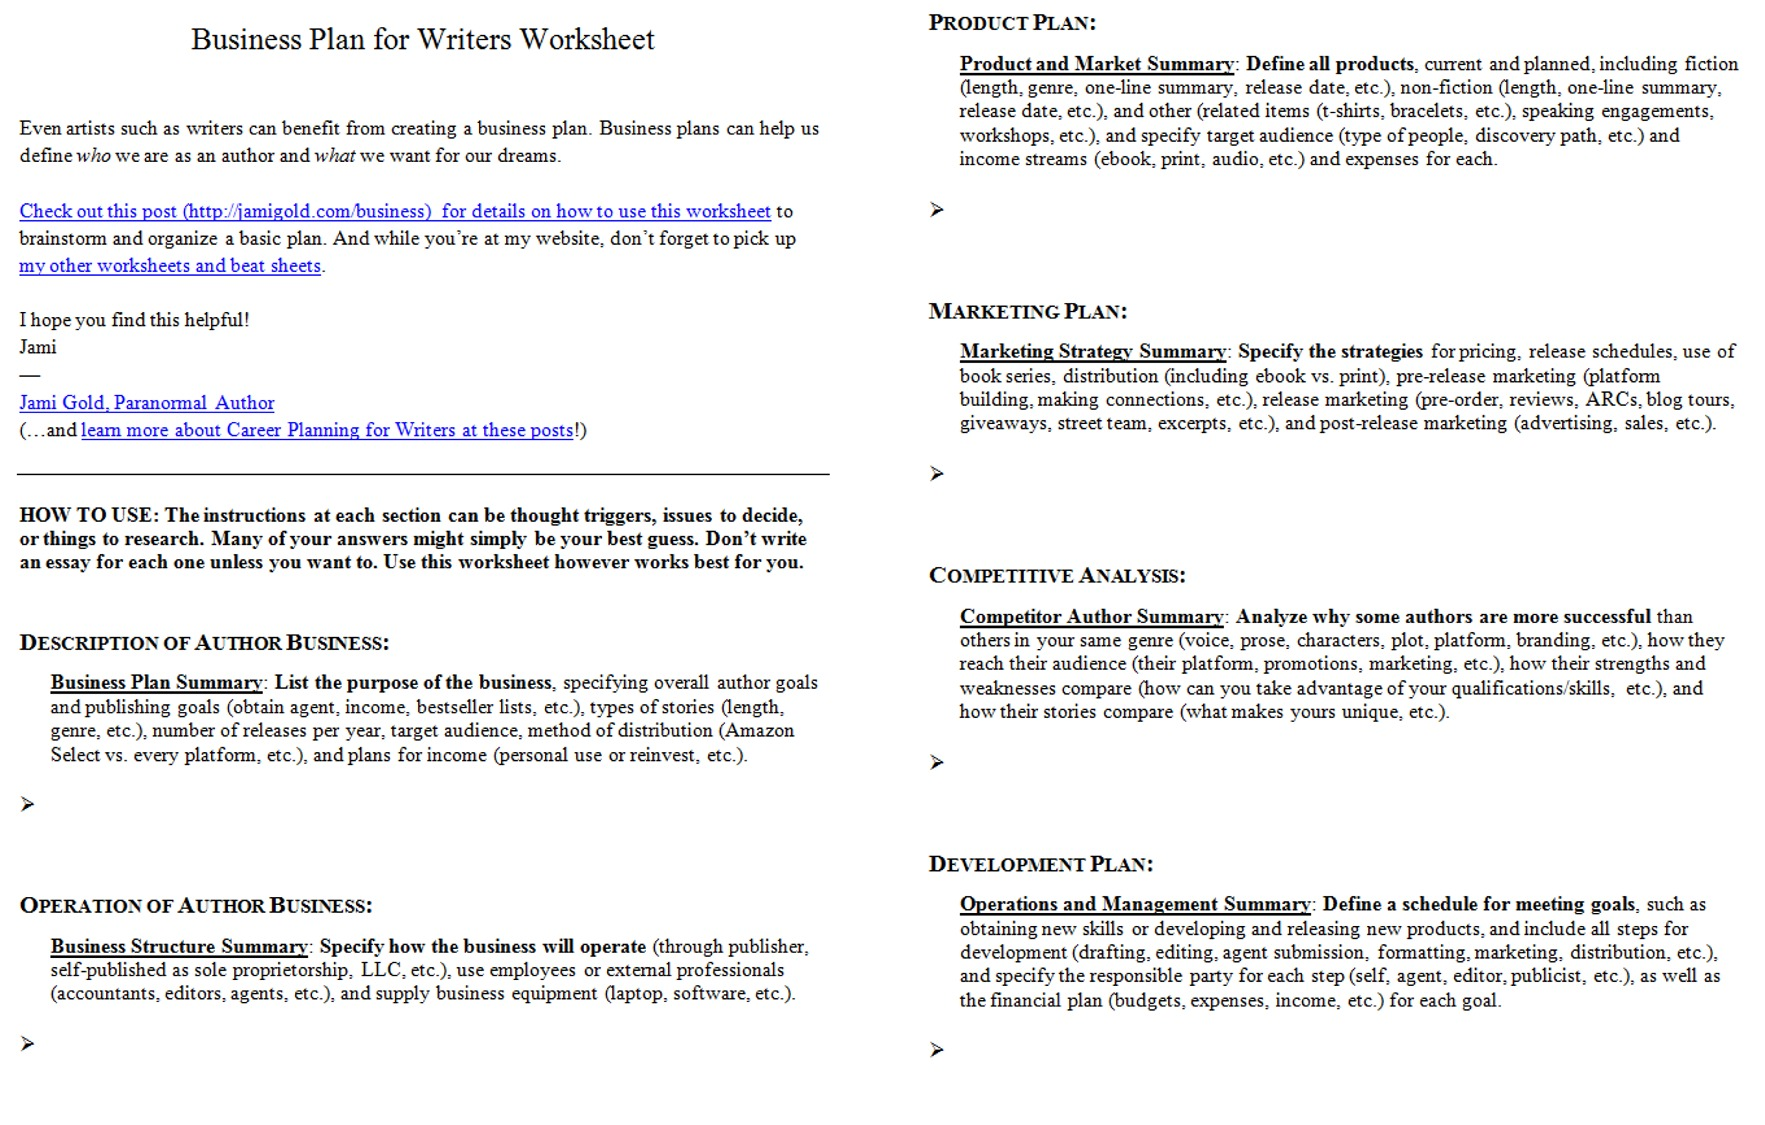 Worksheet Career Planning Worksheet Grass Fedjp